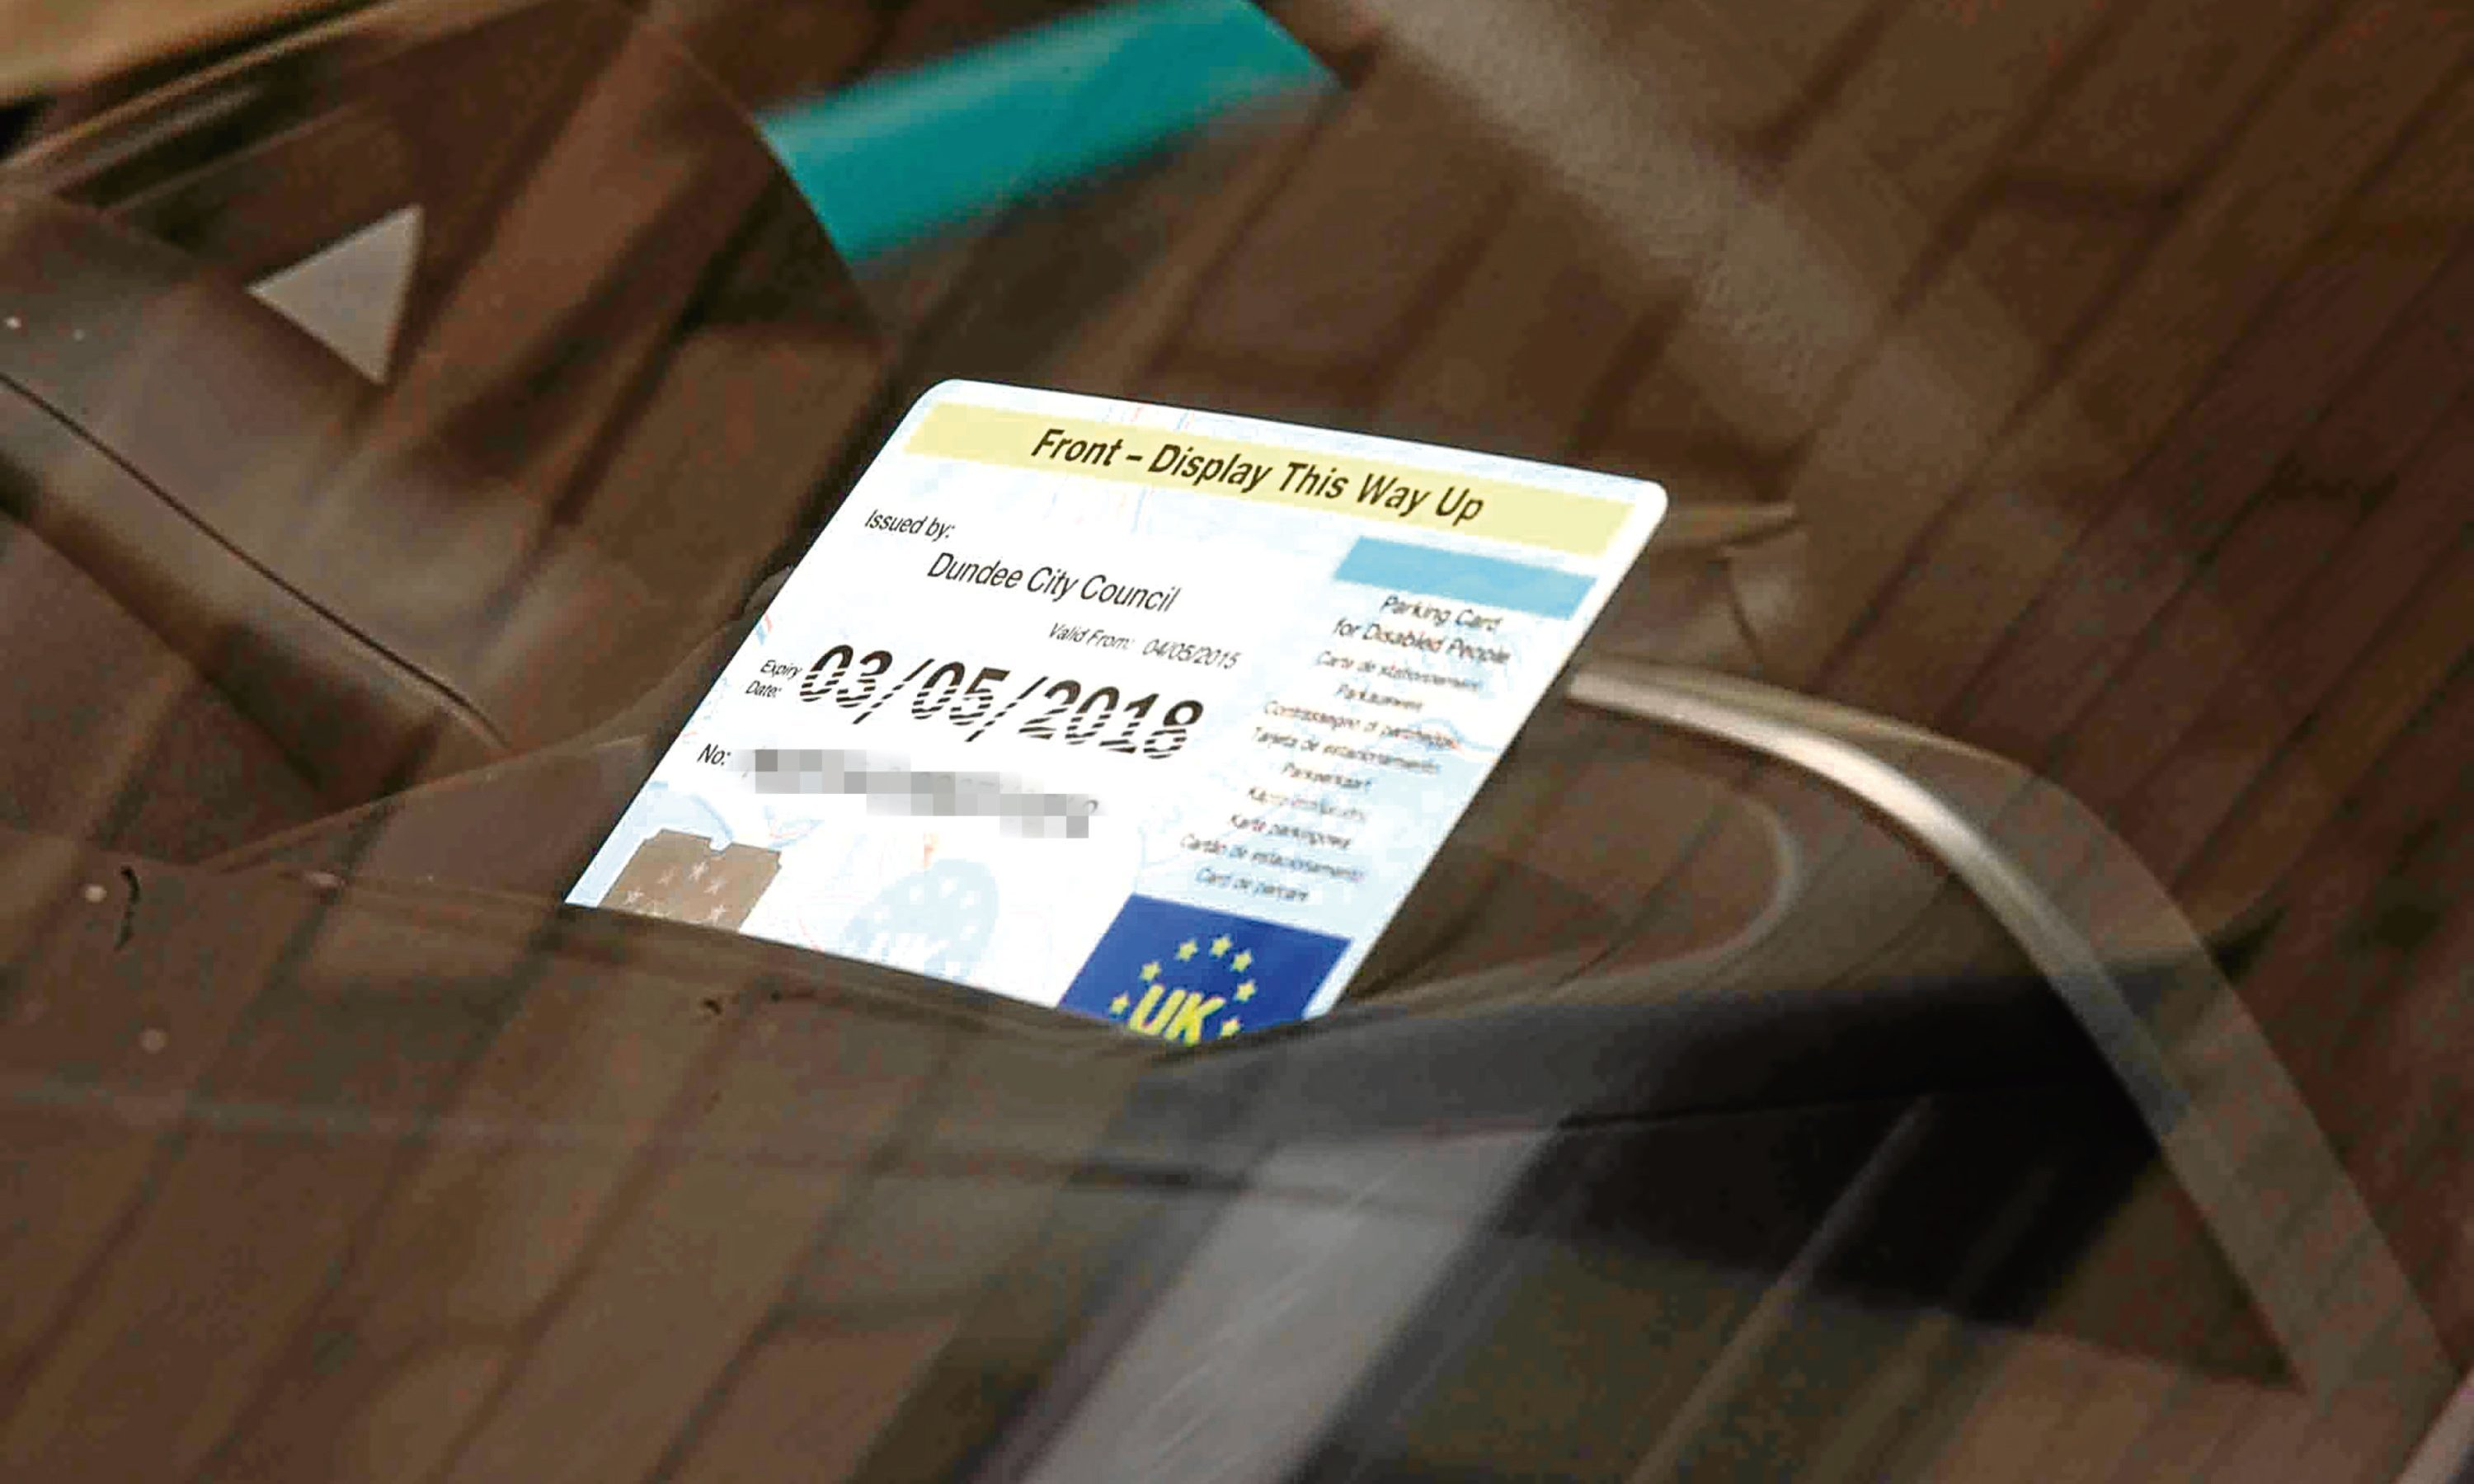 Misuse of the badges, which allow drivers to park in more accessible locations, is on the rise.